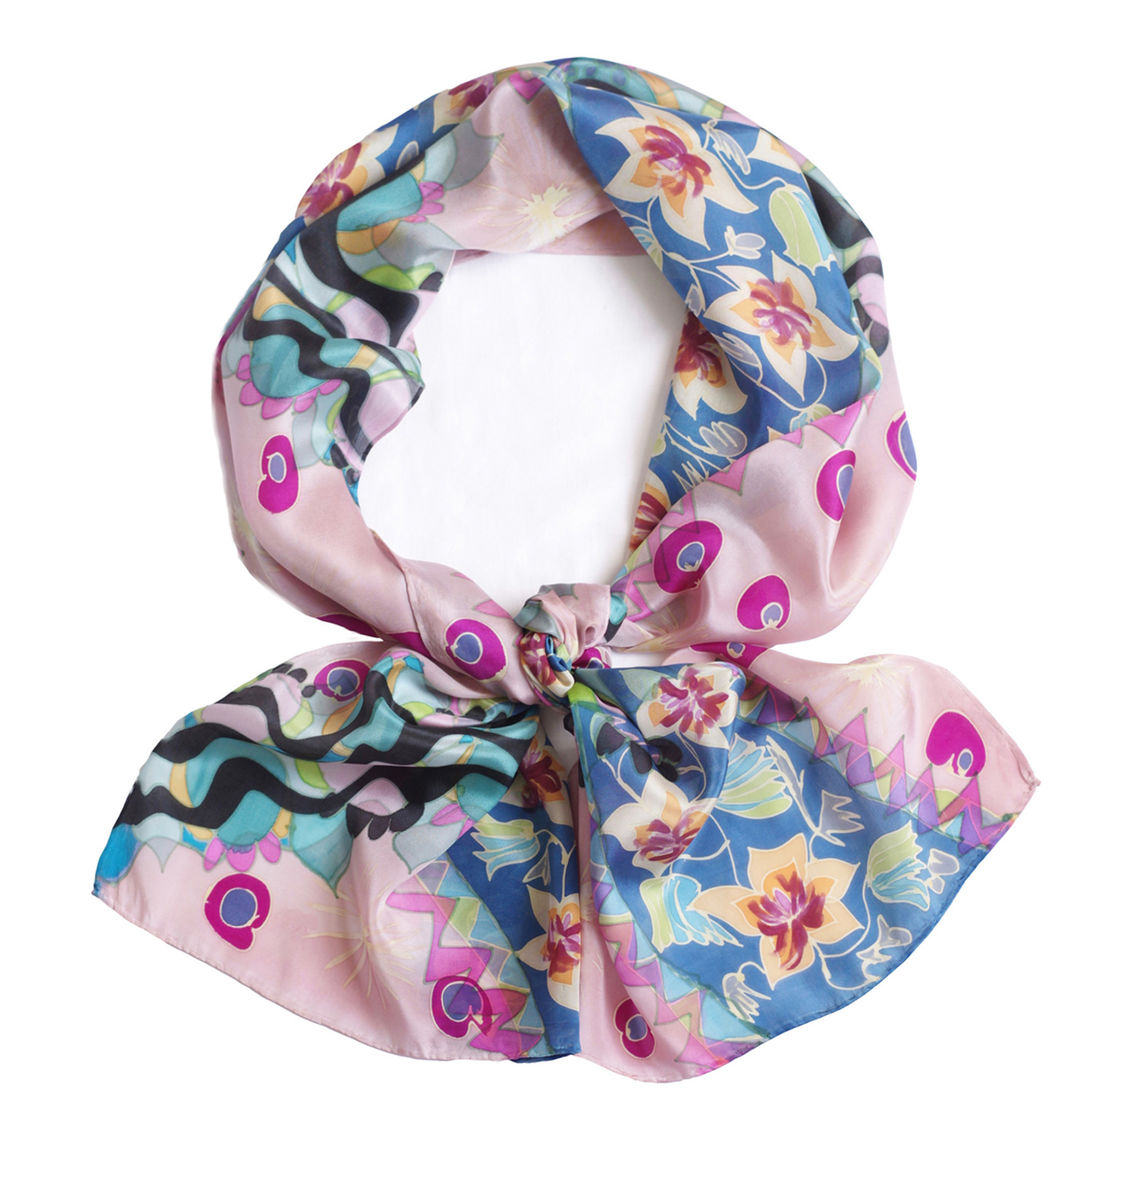 Doretta Pink - Hand painted silk scarf - product images  of